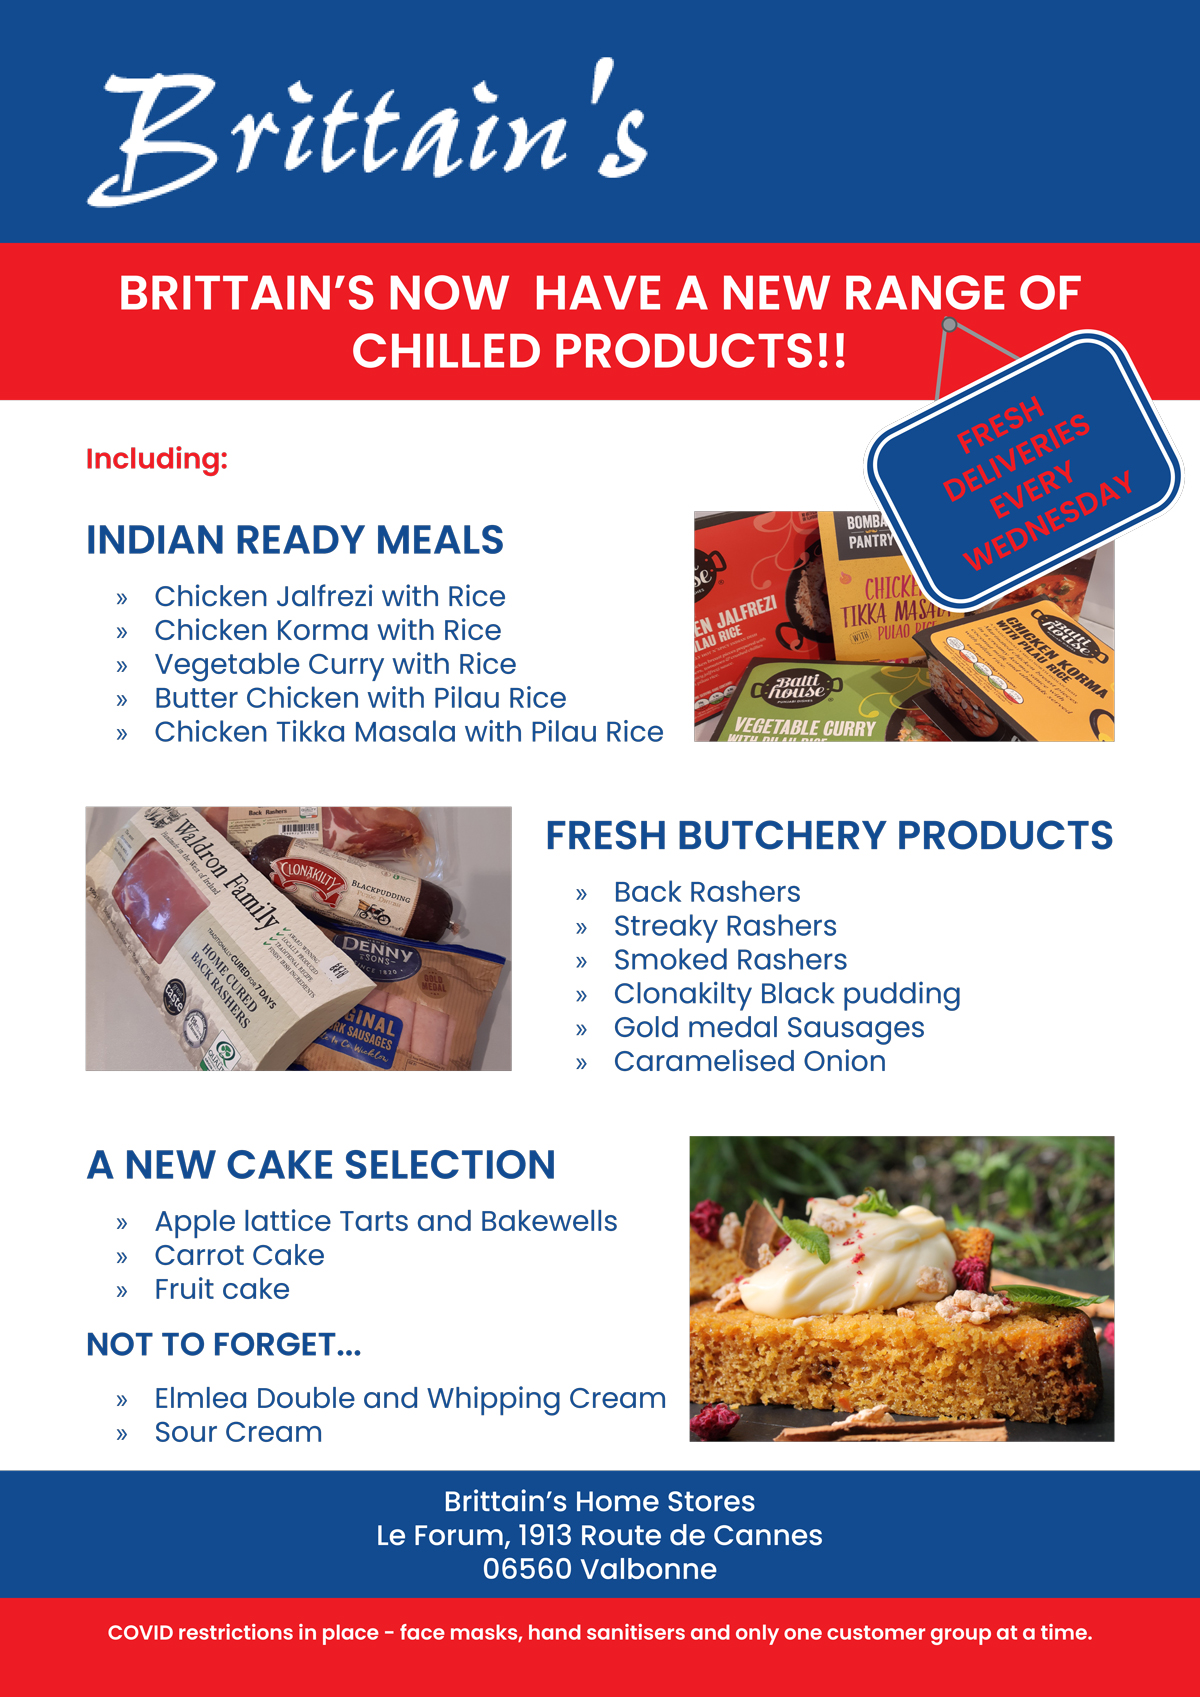 Brittain's new range of chilled products